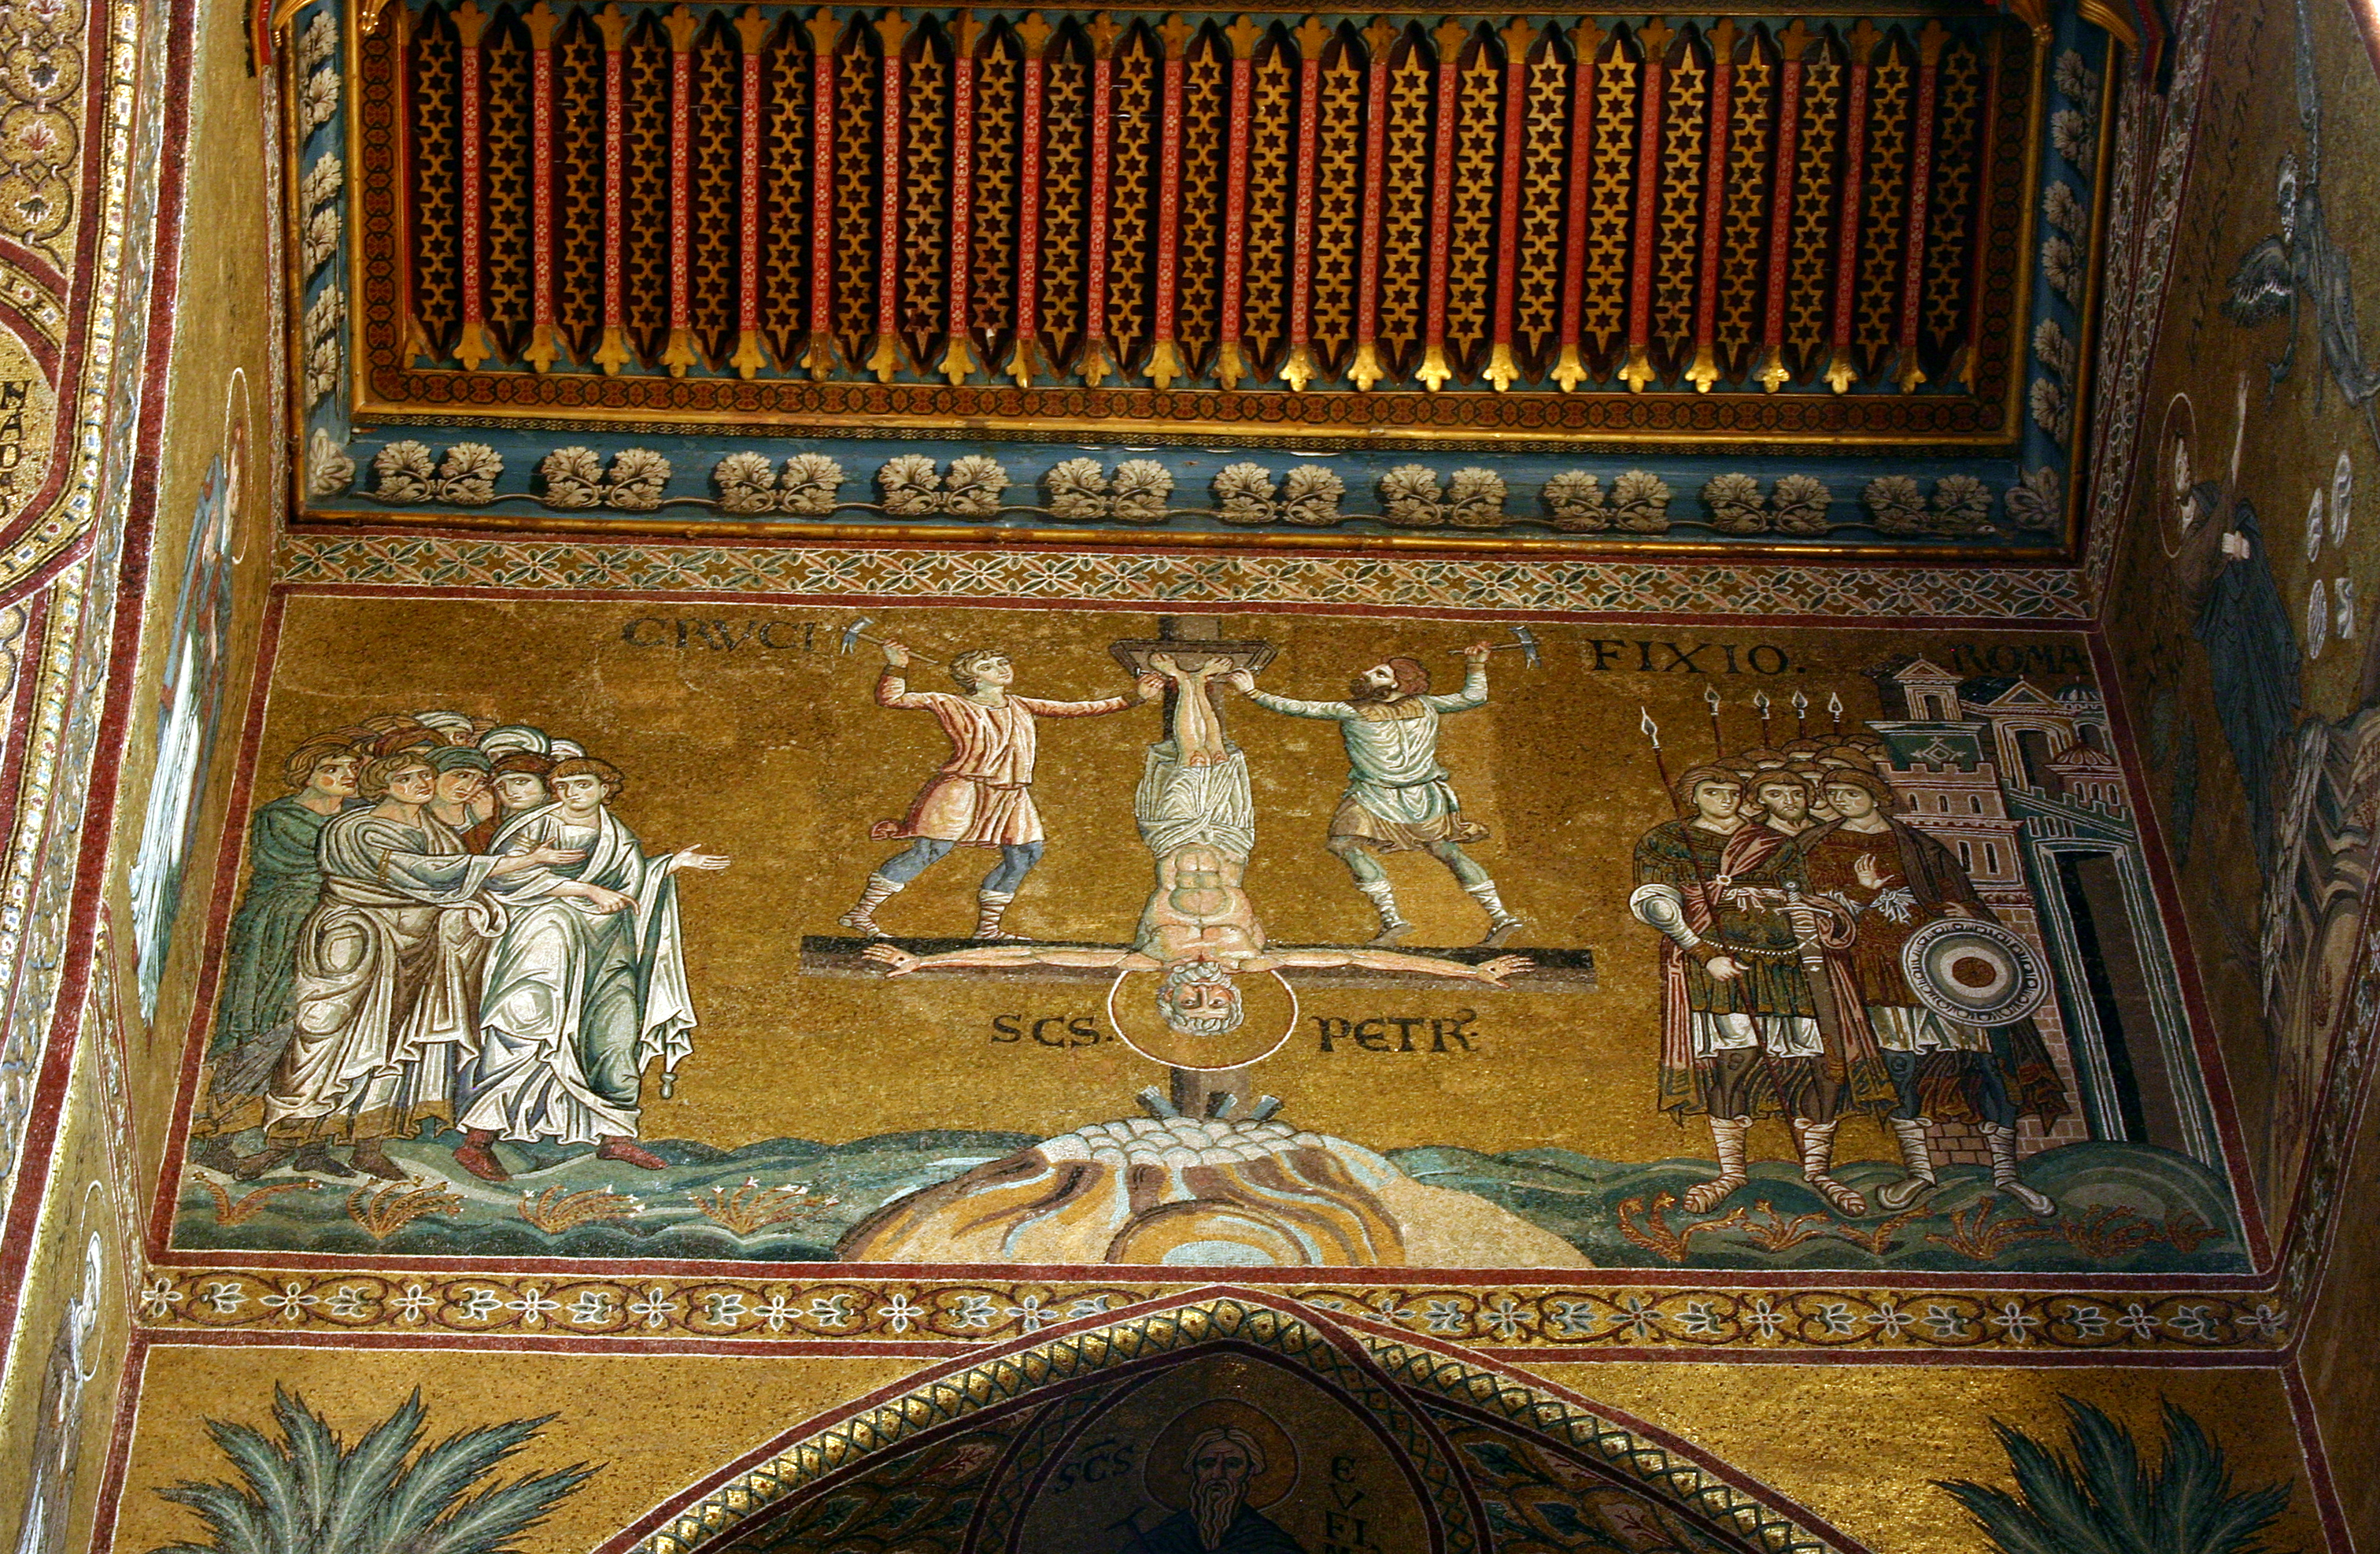 https://upload.wikimedia.org/wikipedia/commons/1/1d/Martyrdom_of_St_Peter_-_Cathedral_of_Monreale_-_Italy_2015.JPG